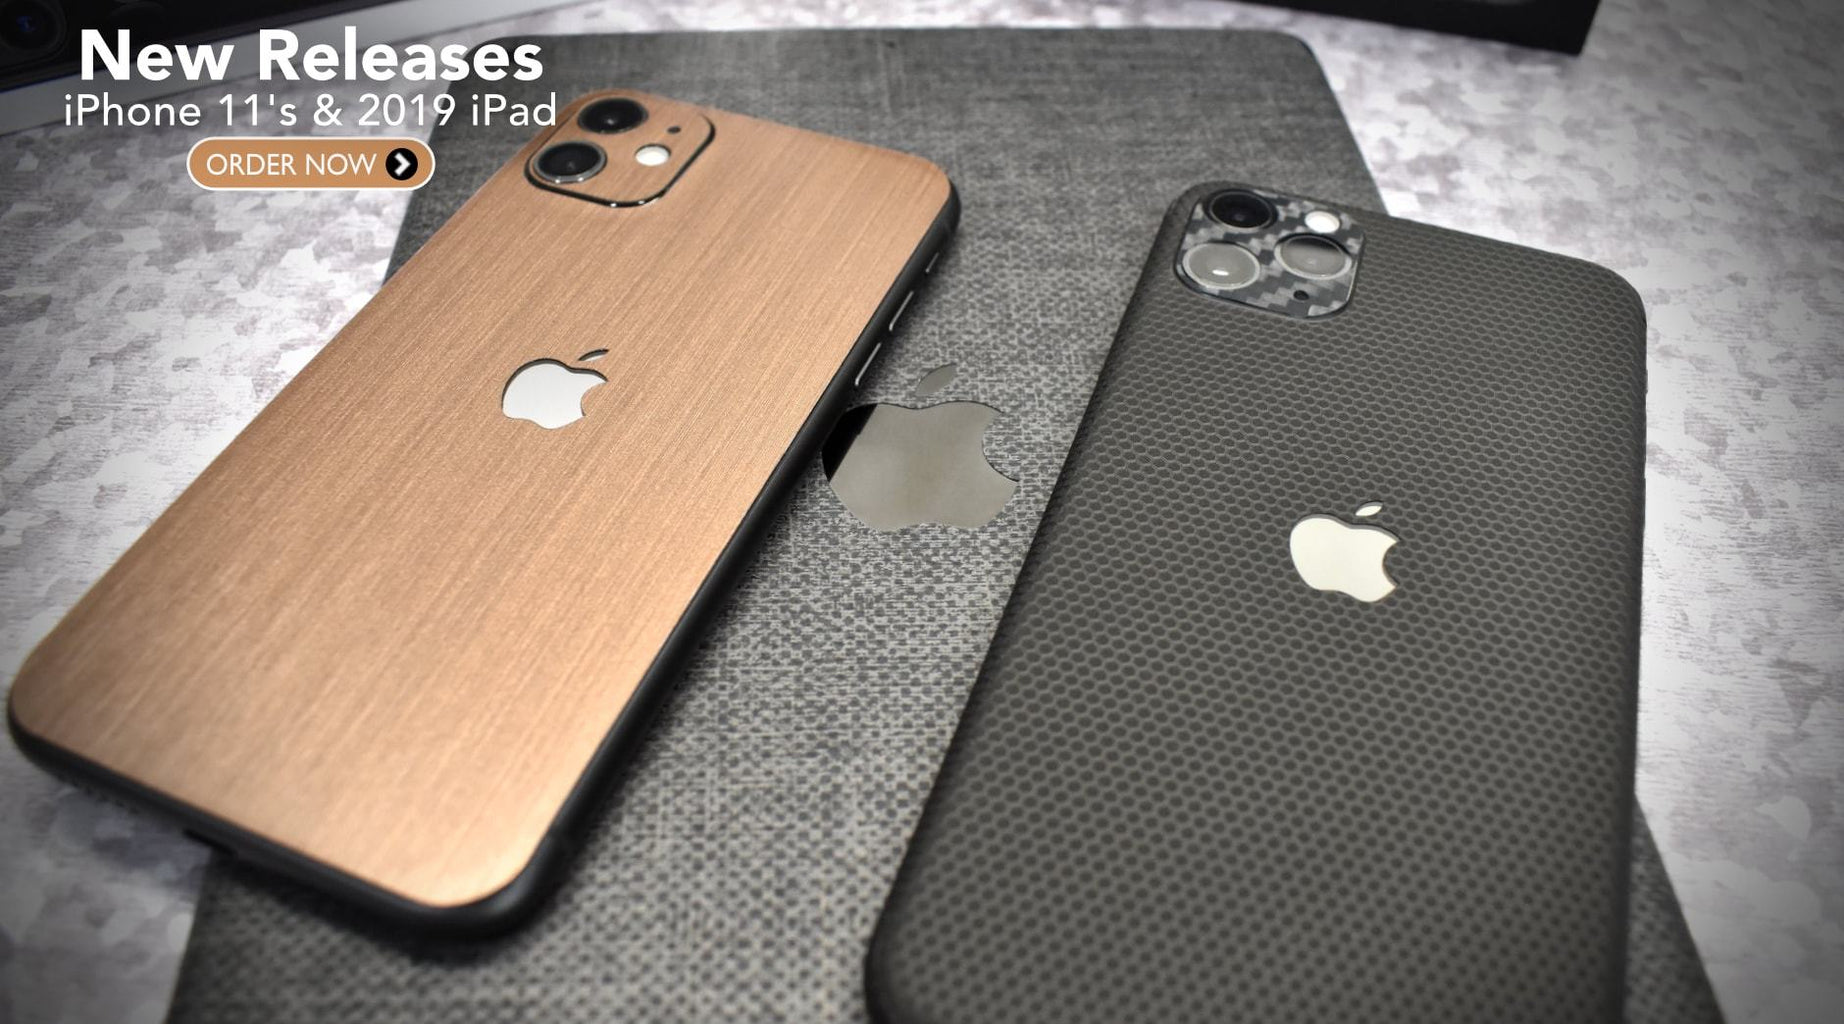 iPhone 11, iPhone 11 Pro, iPhone 11 Pro Max Skins